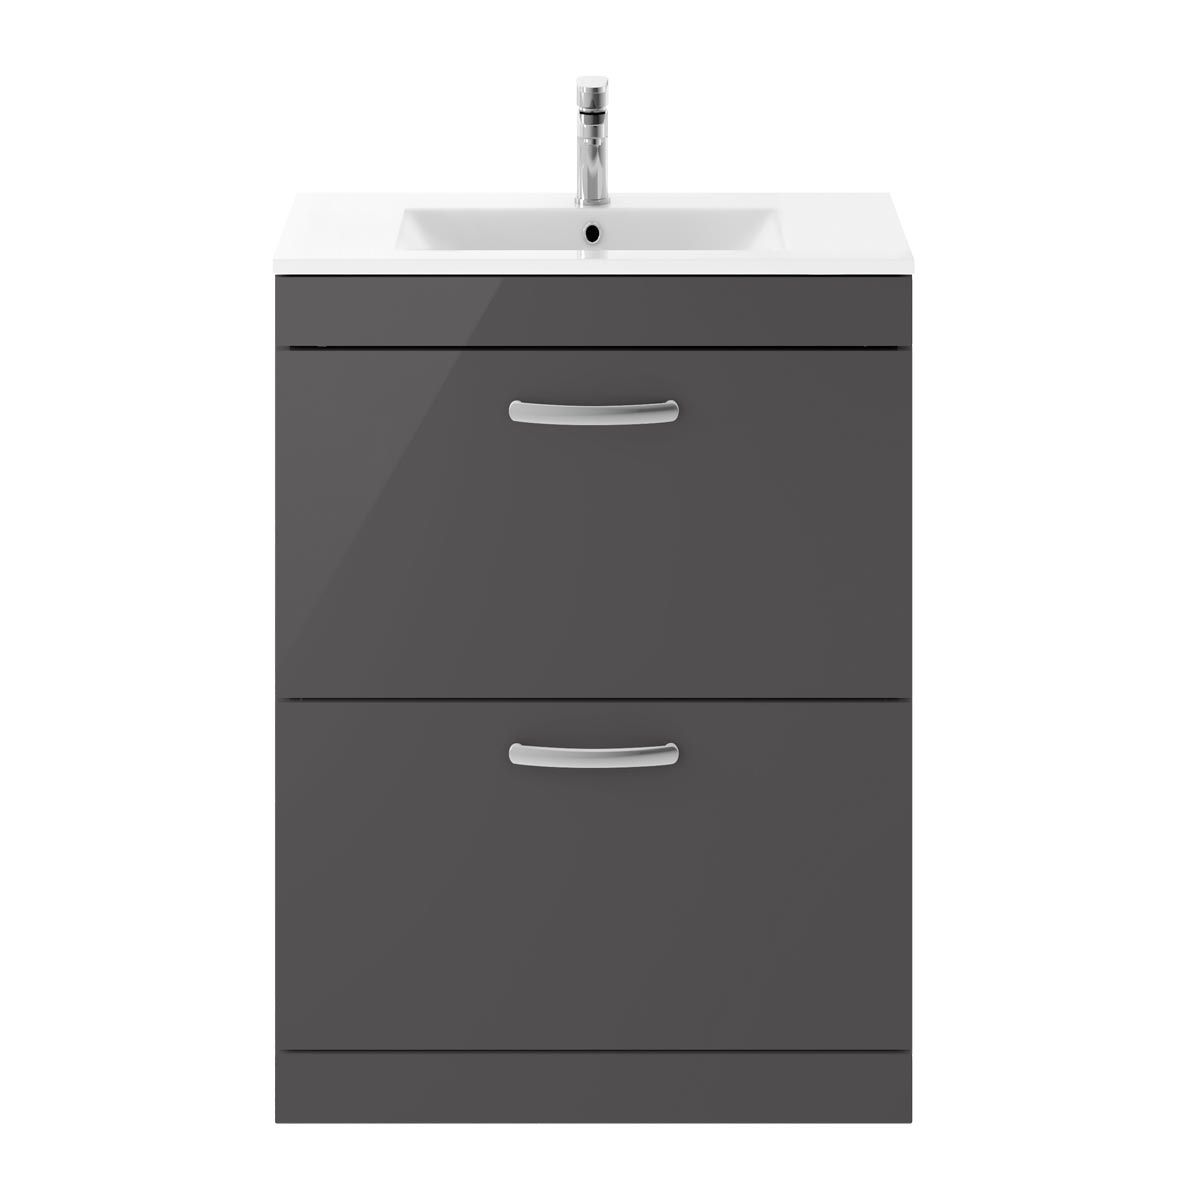 Nuie Athena Gloss Grey 2 Drawer Floor Standing Vanity Unit with 18mm Profile Basin 600mm